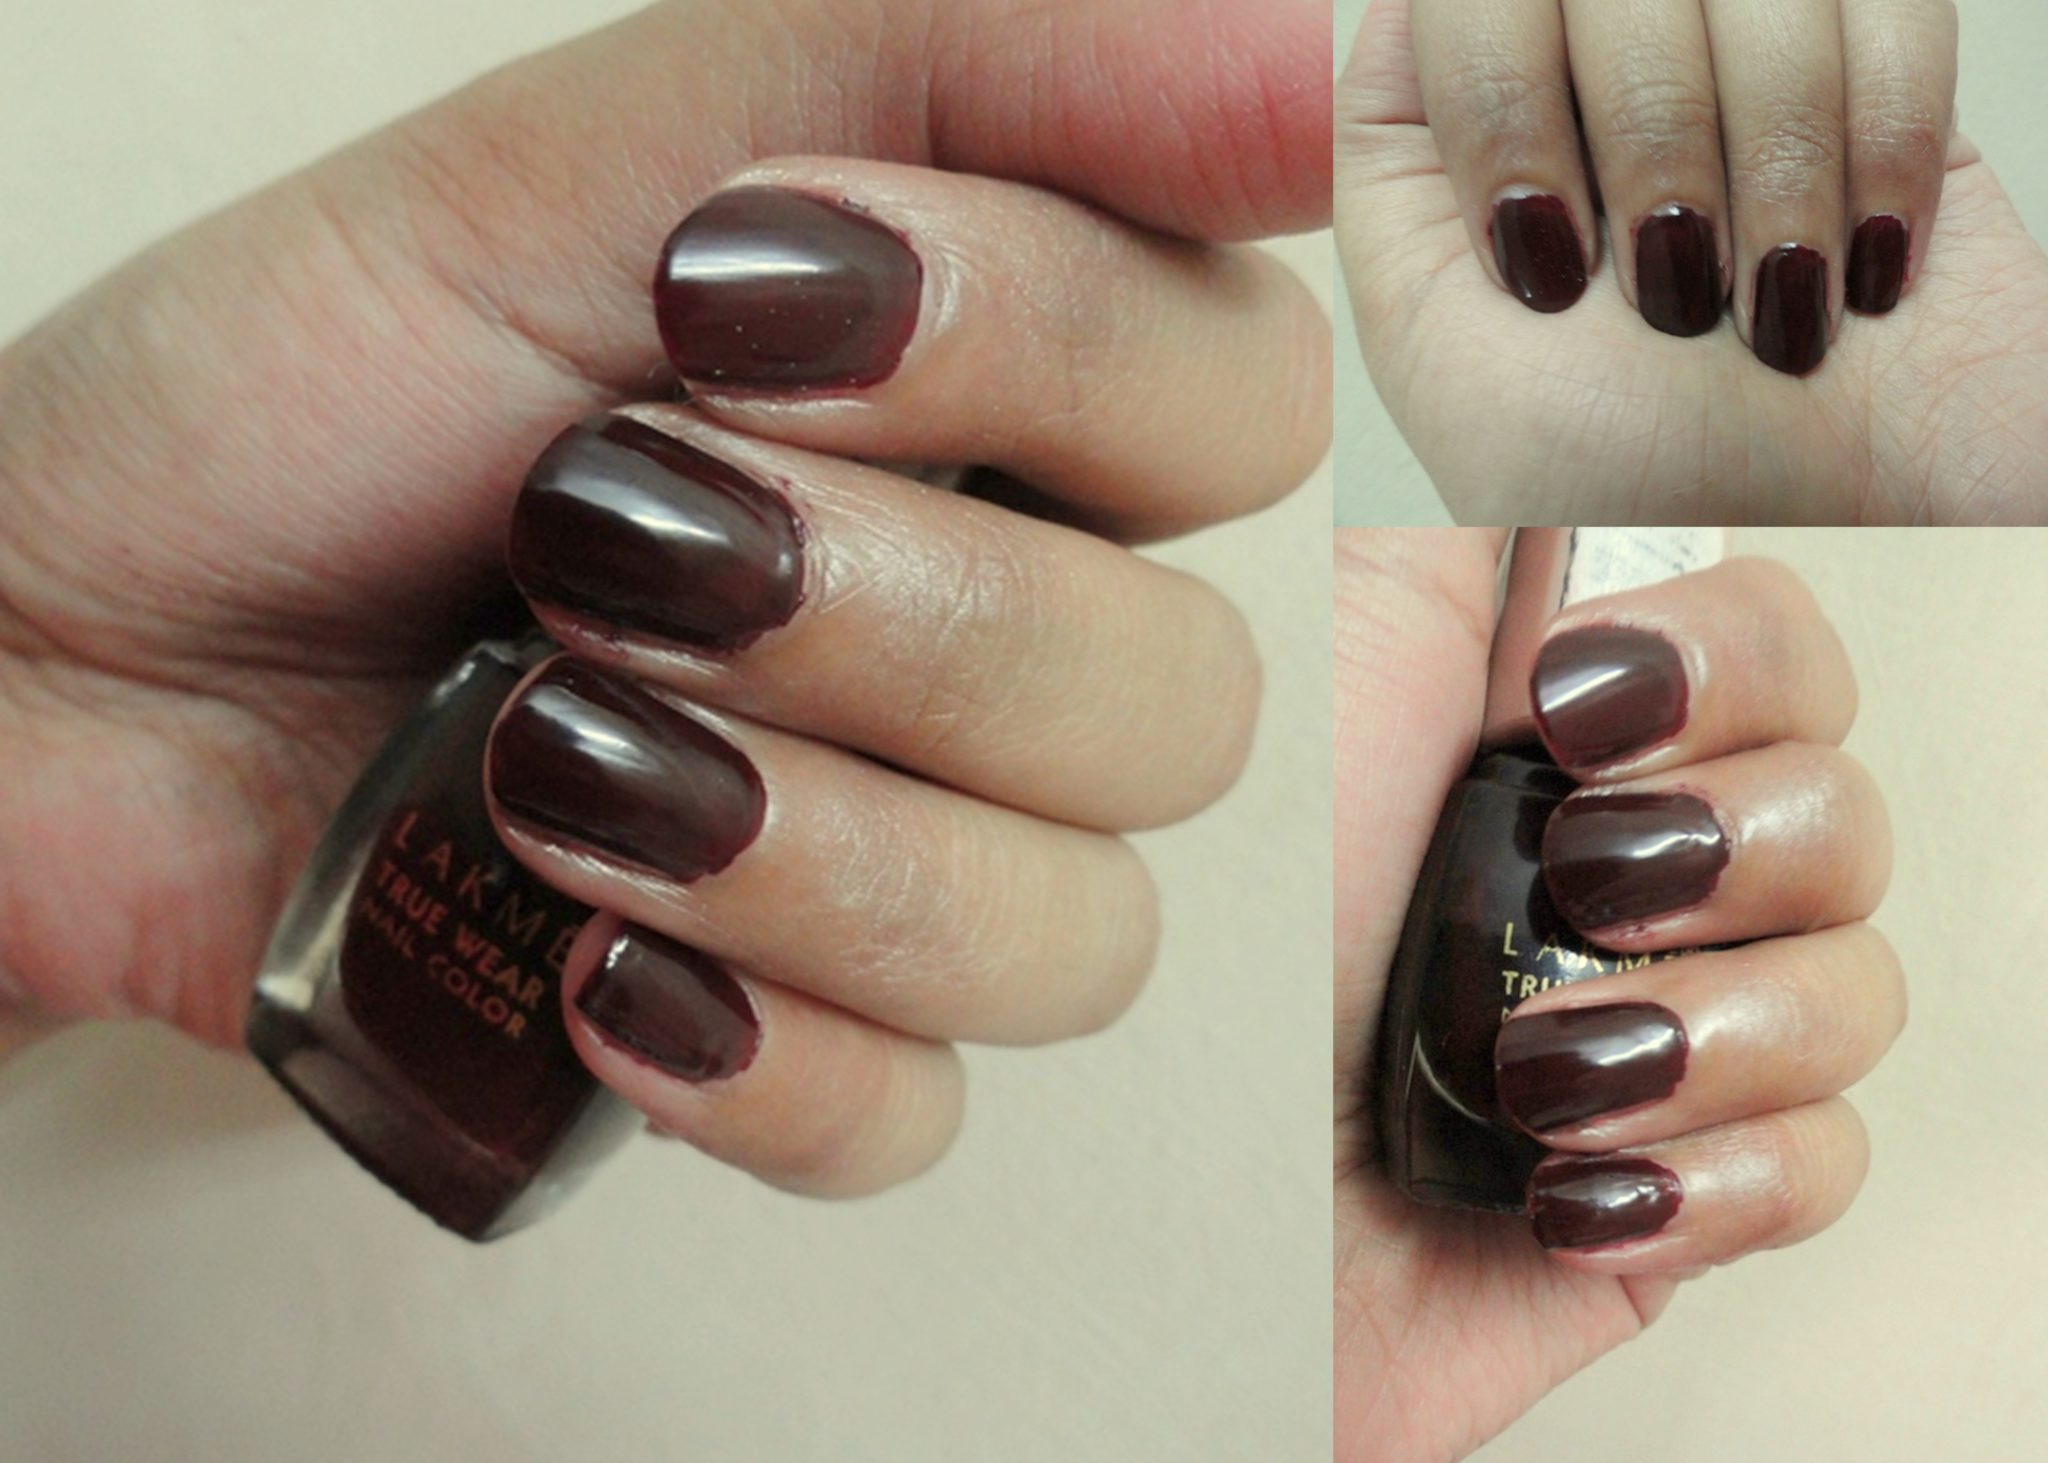 Lakme True Wear Nail Color 403 Swatches|Vanitynoapologies|Indian ...